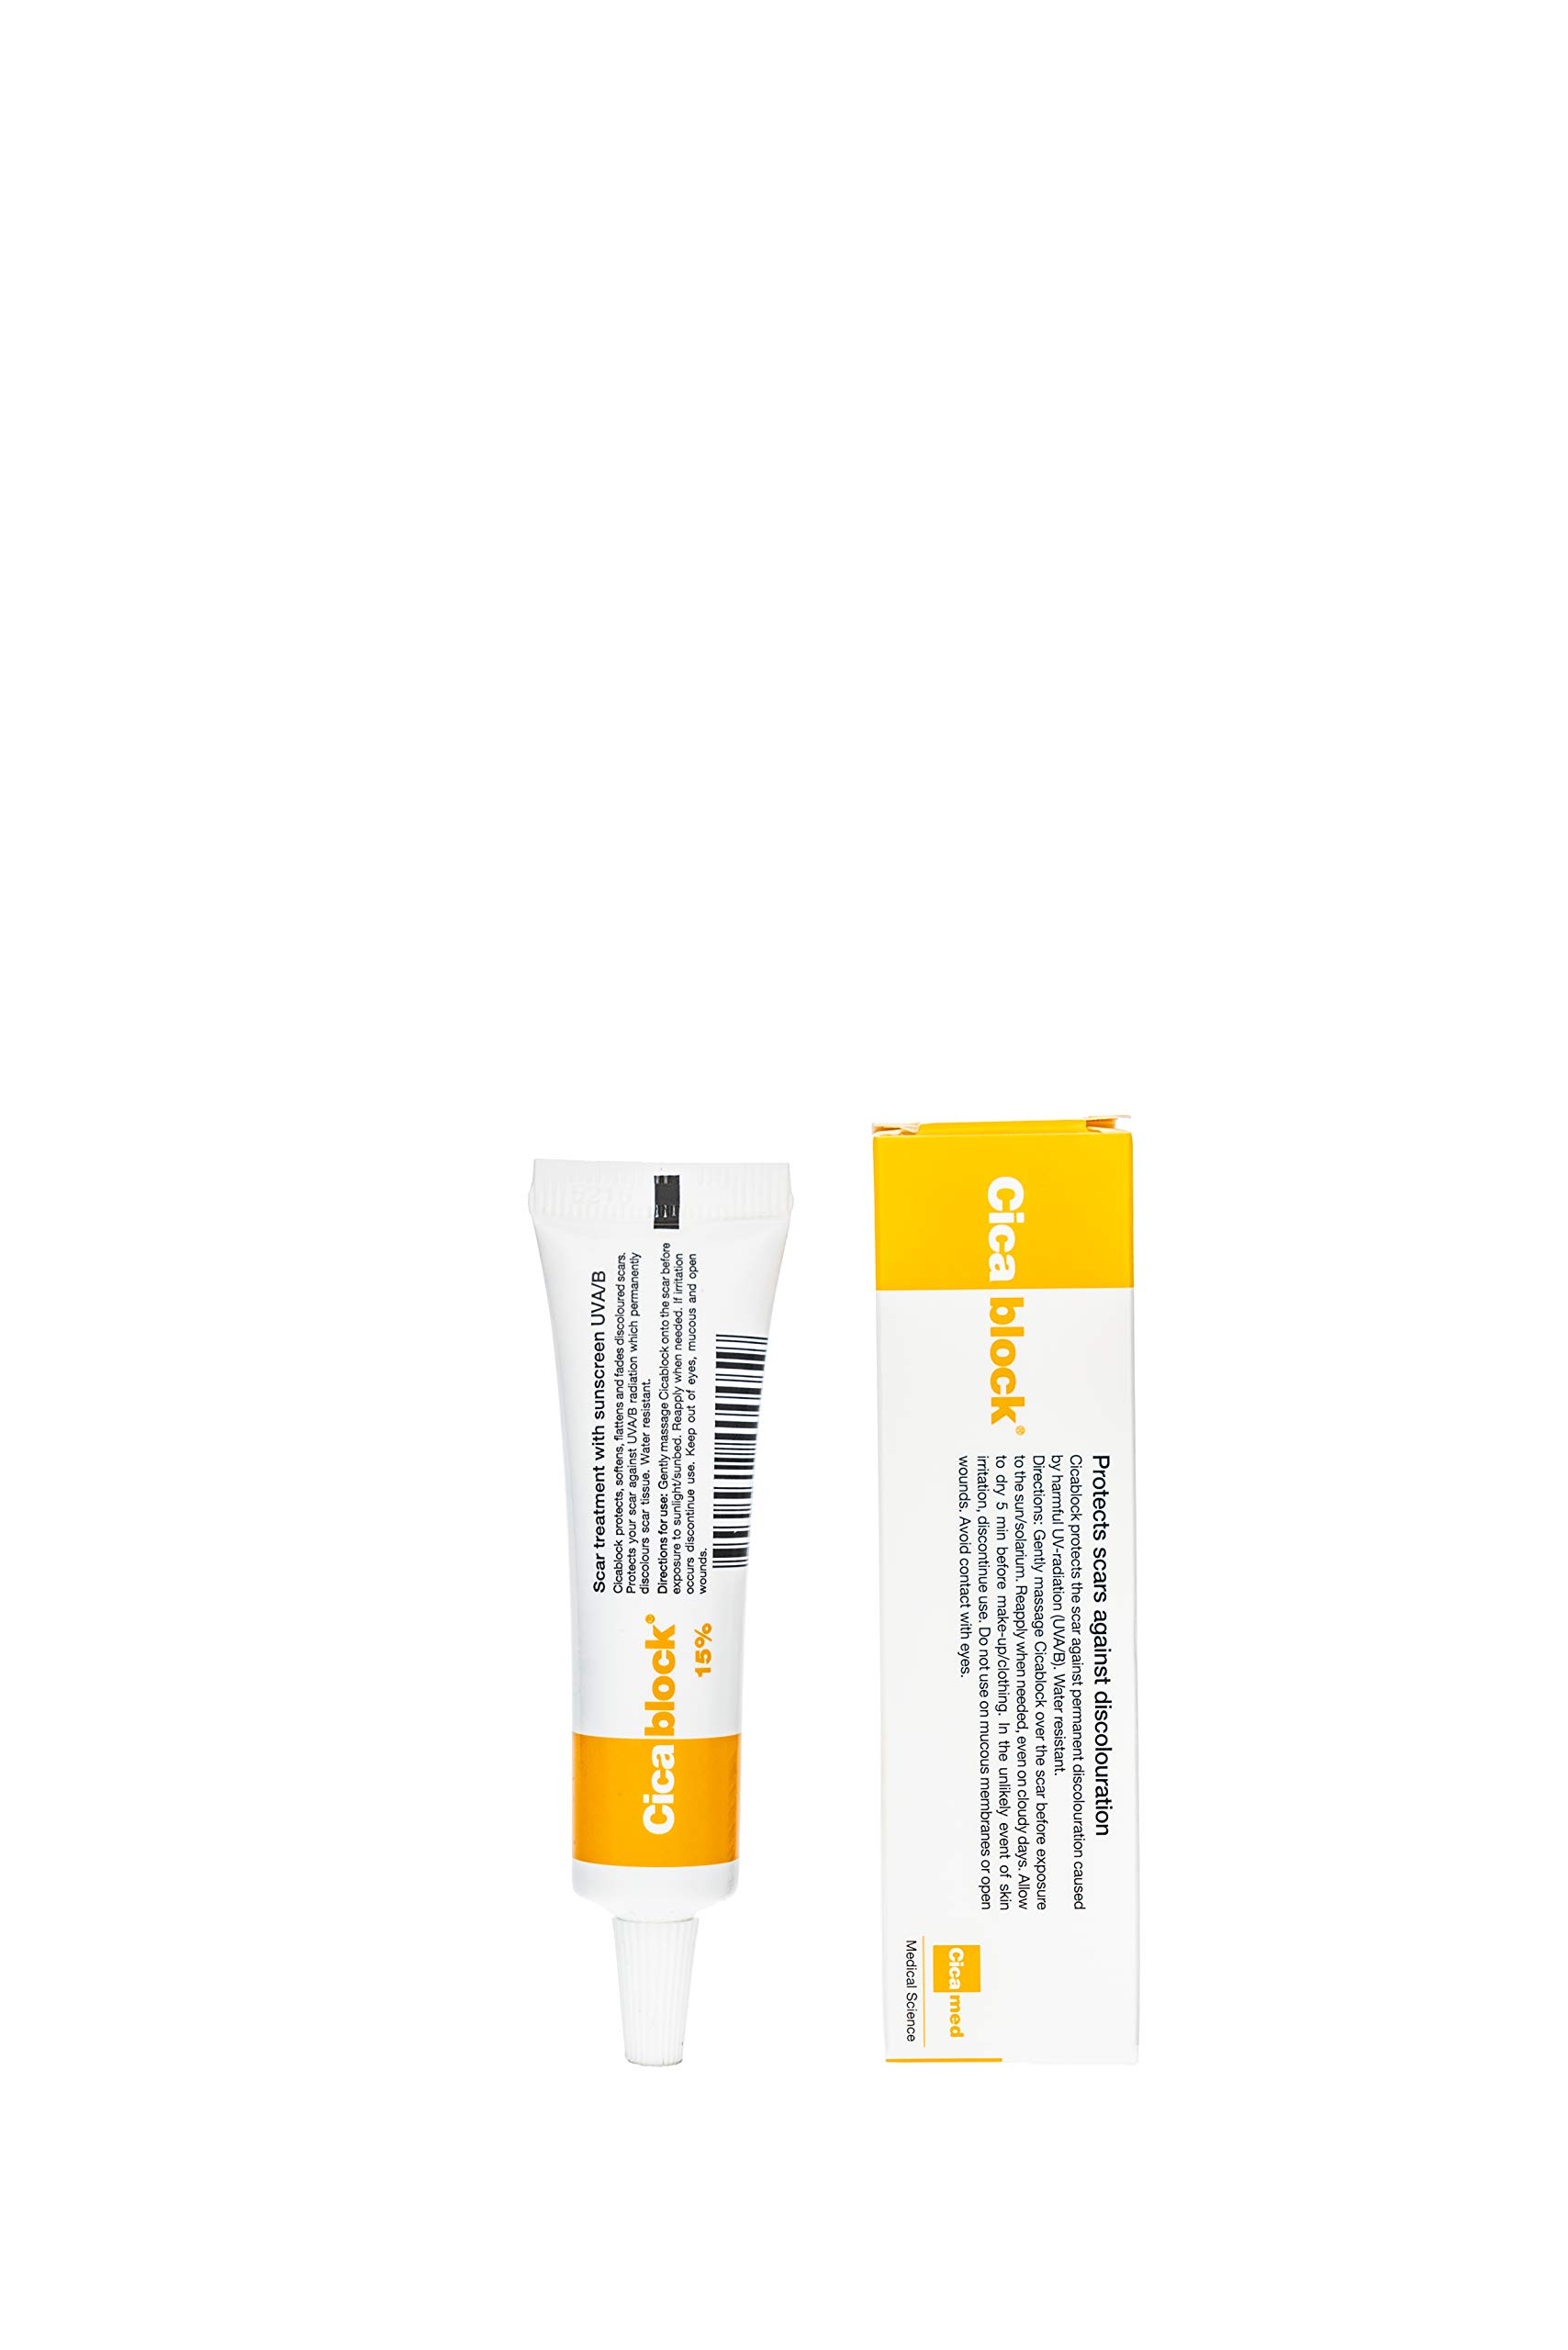 Cicablock, Scar Sun Protection UVA/UVB Sunscreen, Cicamed Organic Science